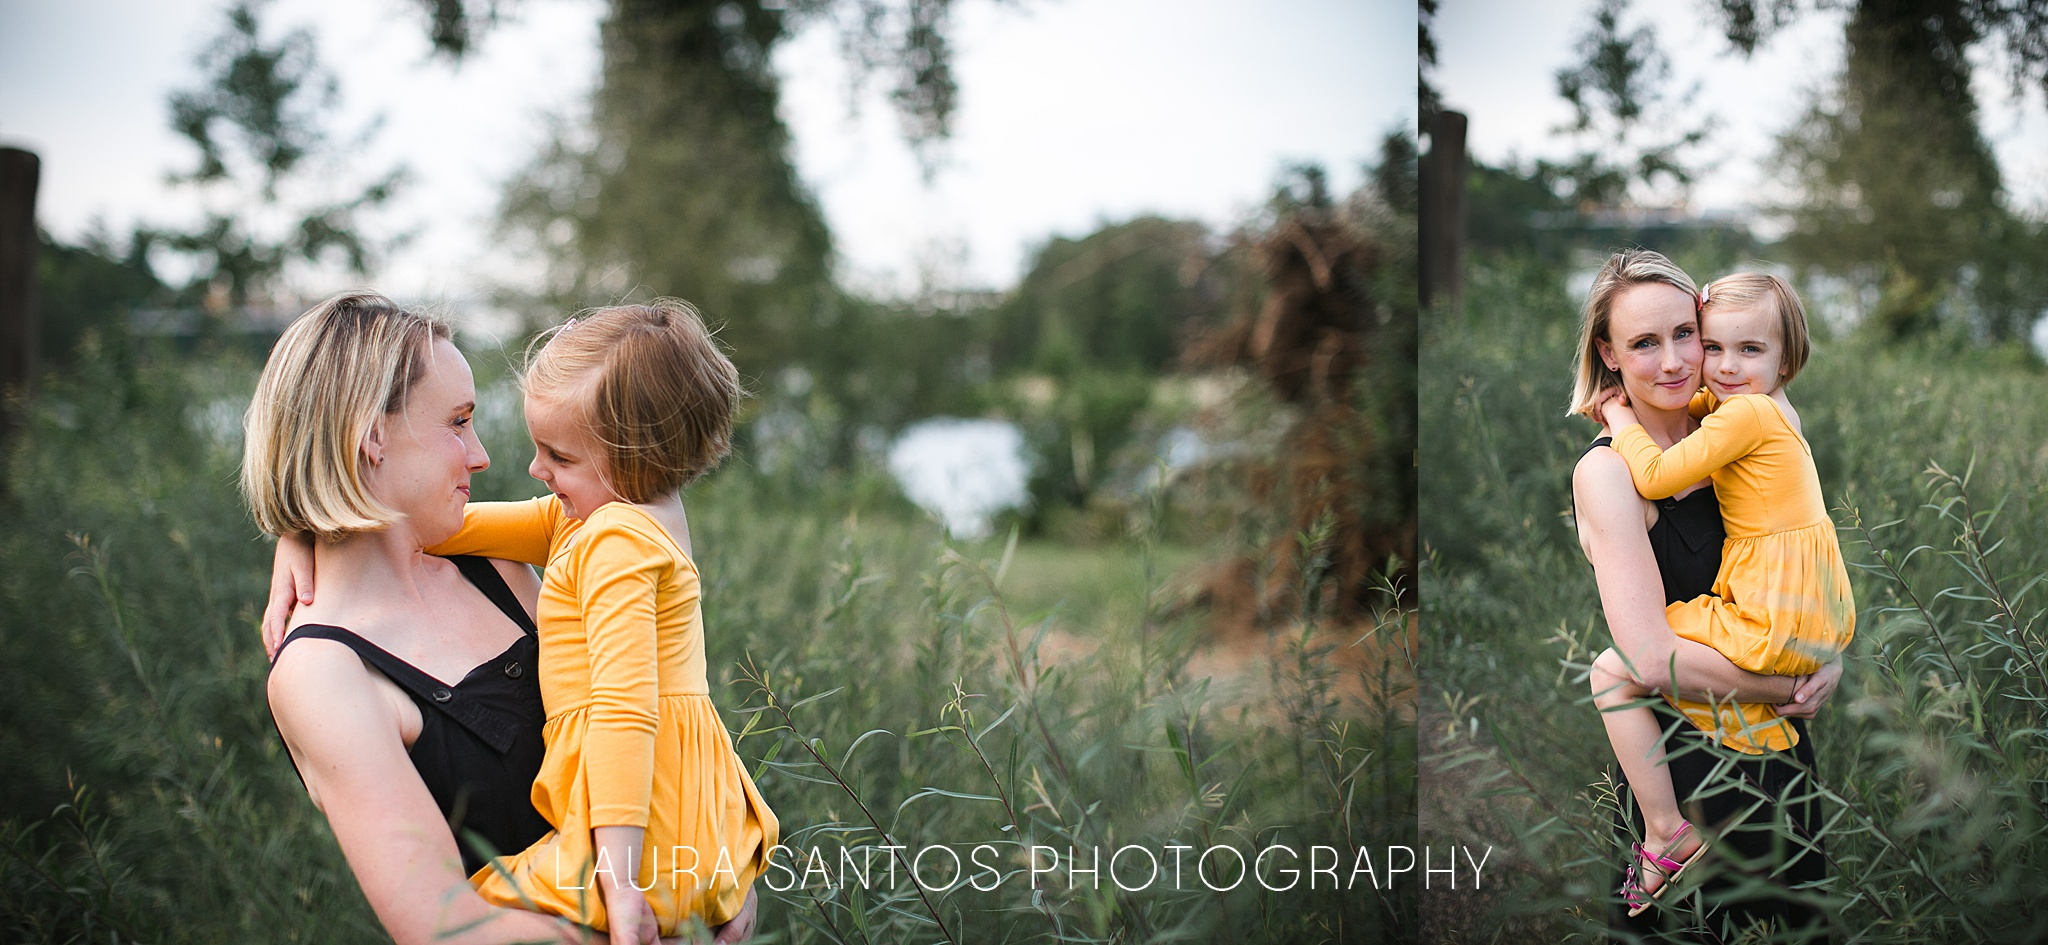 Laura Santos Photography Portland Oregon Family Photographer_1050.jpg